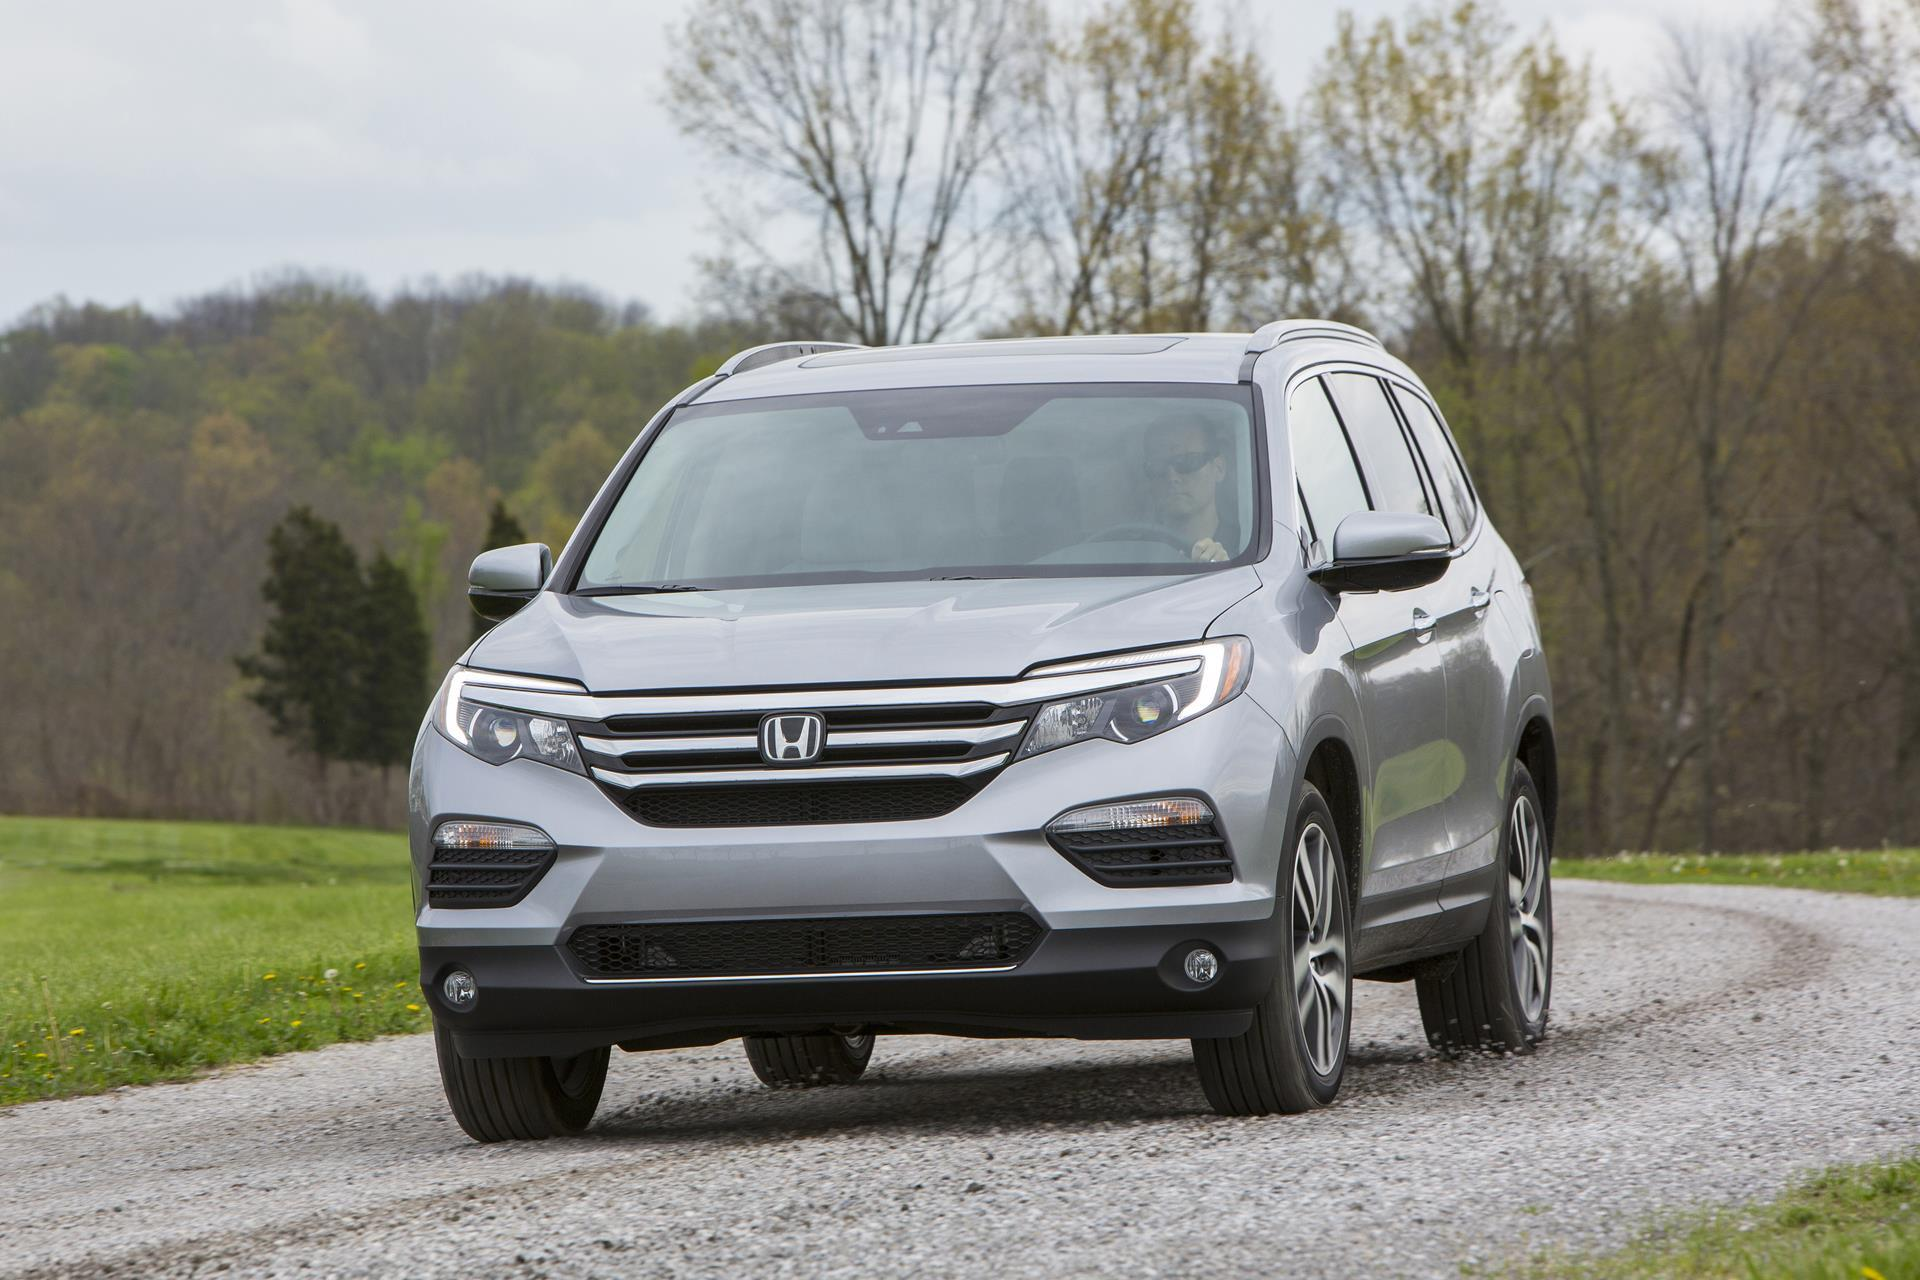 2017 honda pilot technical specifications and data engine